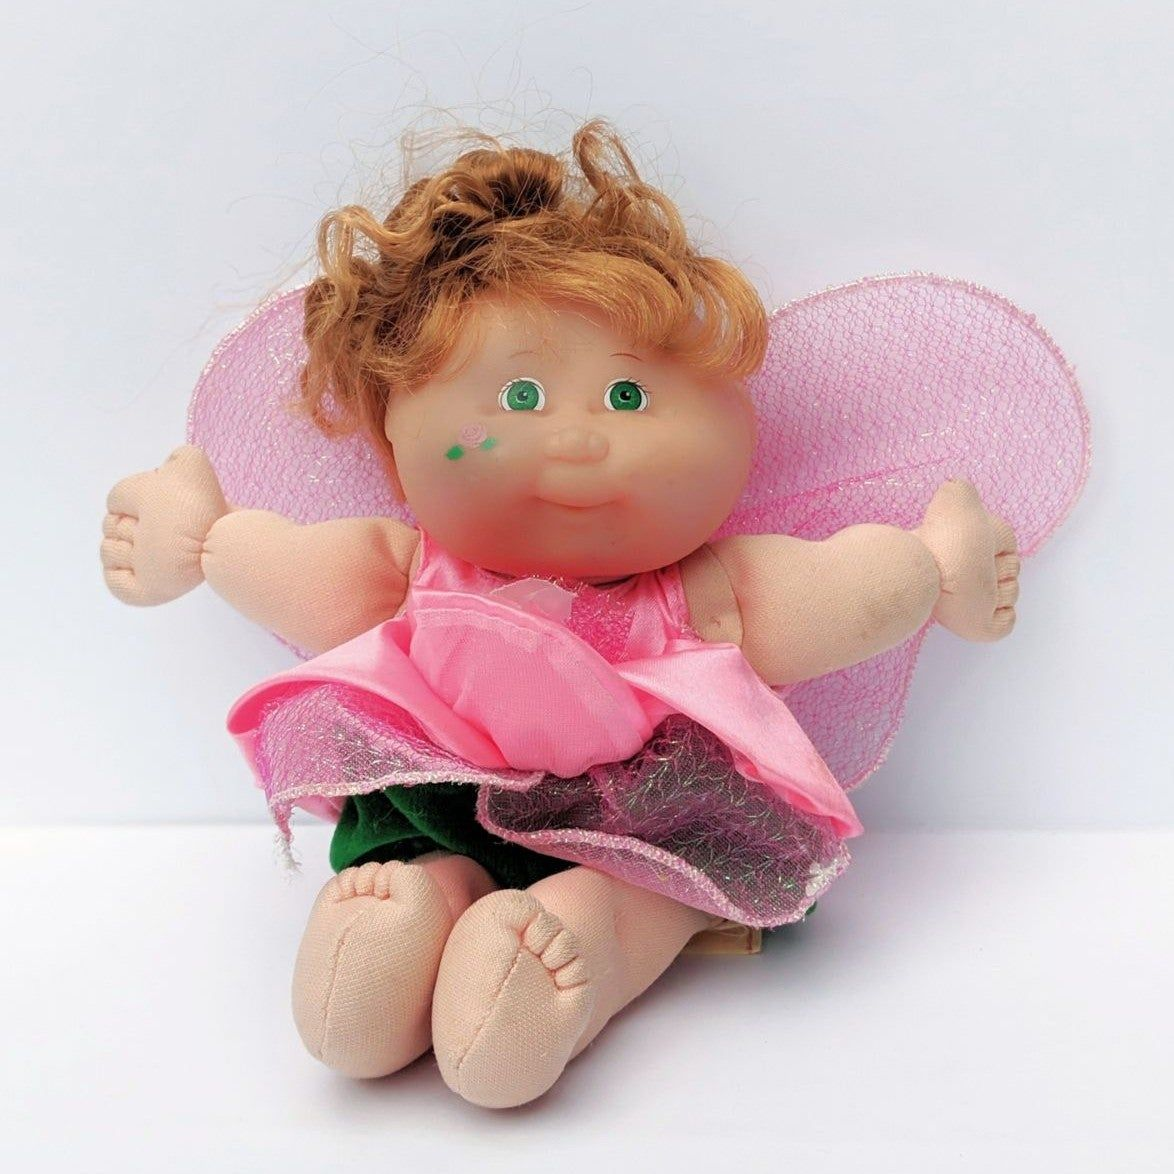 Cabbage Patch Kids Pink Garden Fairy Produced In 1995 Only Flaw Is A Small Stain On The Right Side Of Cabbage Patch Kids Dolls Cabbage Patch Kids Pink Garden